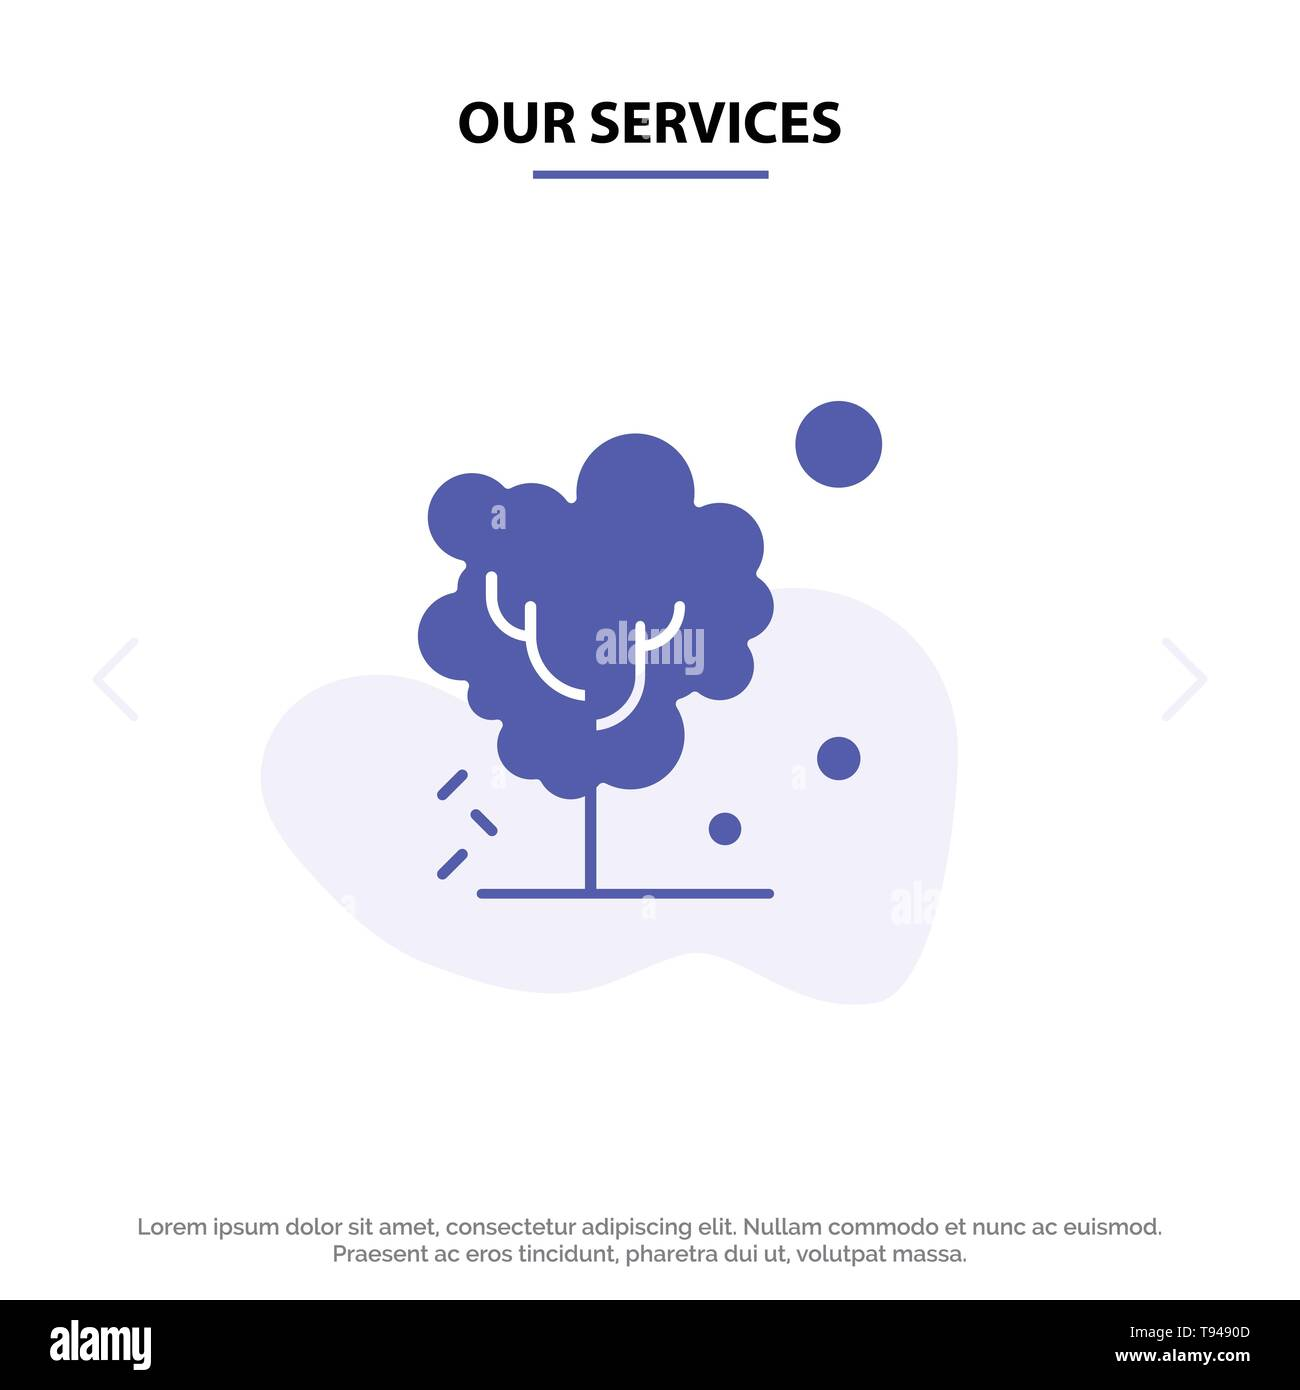 Our Services Dry, Global, Soil, Tree, Warming Solid Glyph Icon Web card Template - Stock Image